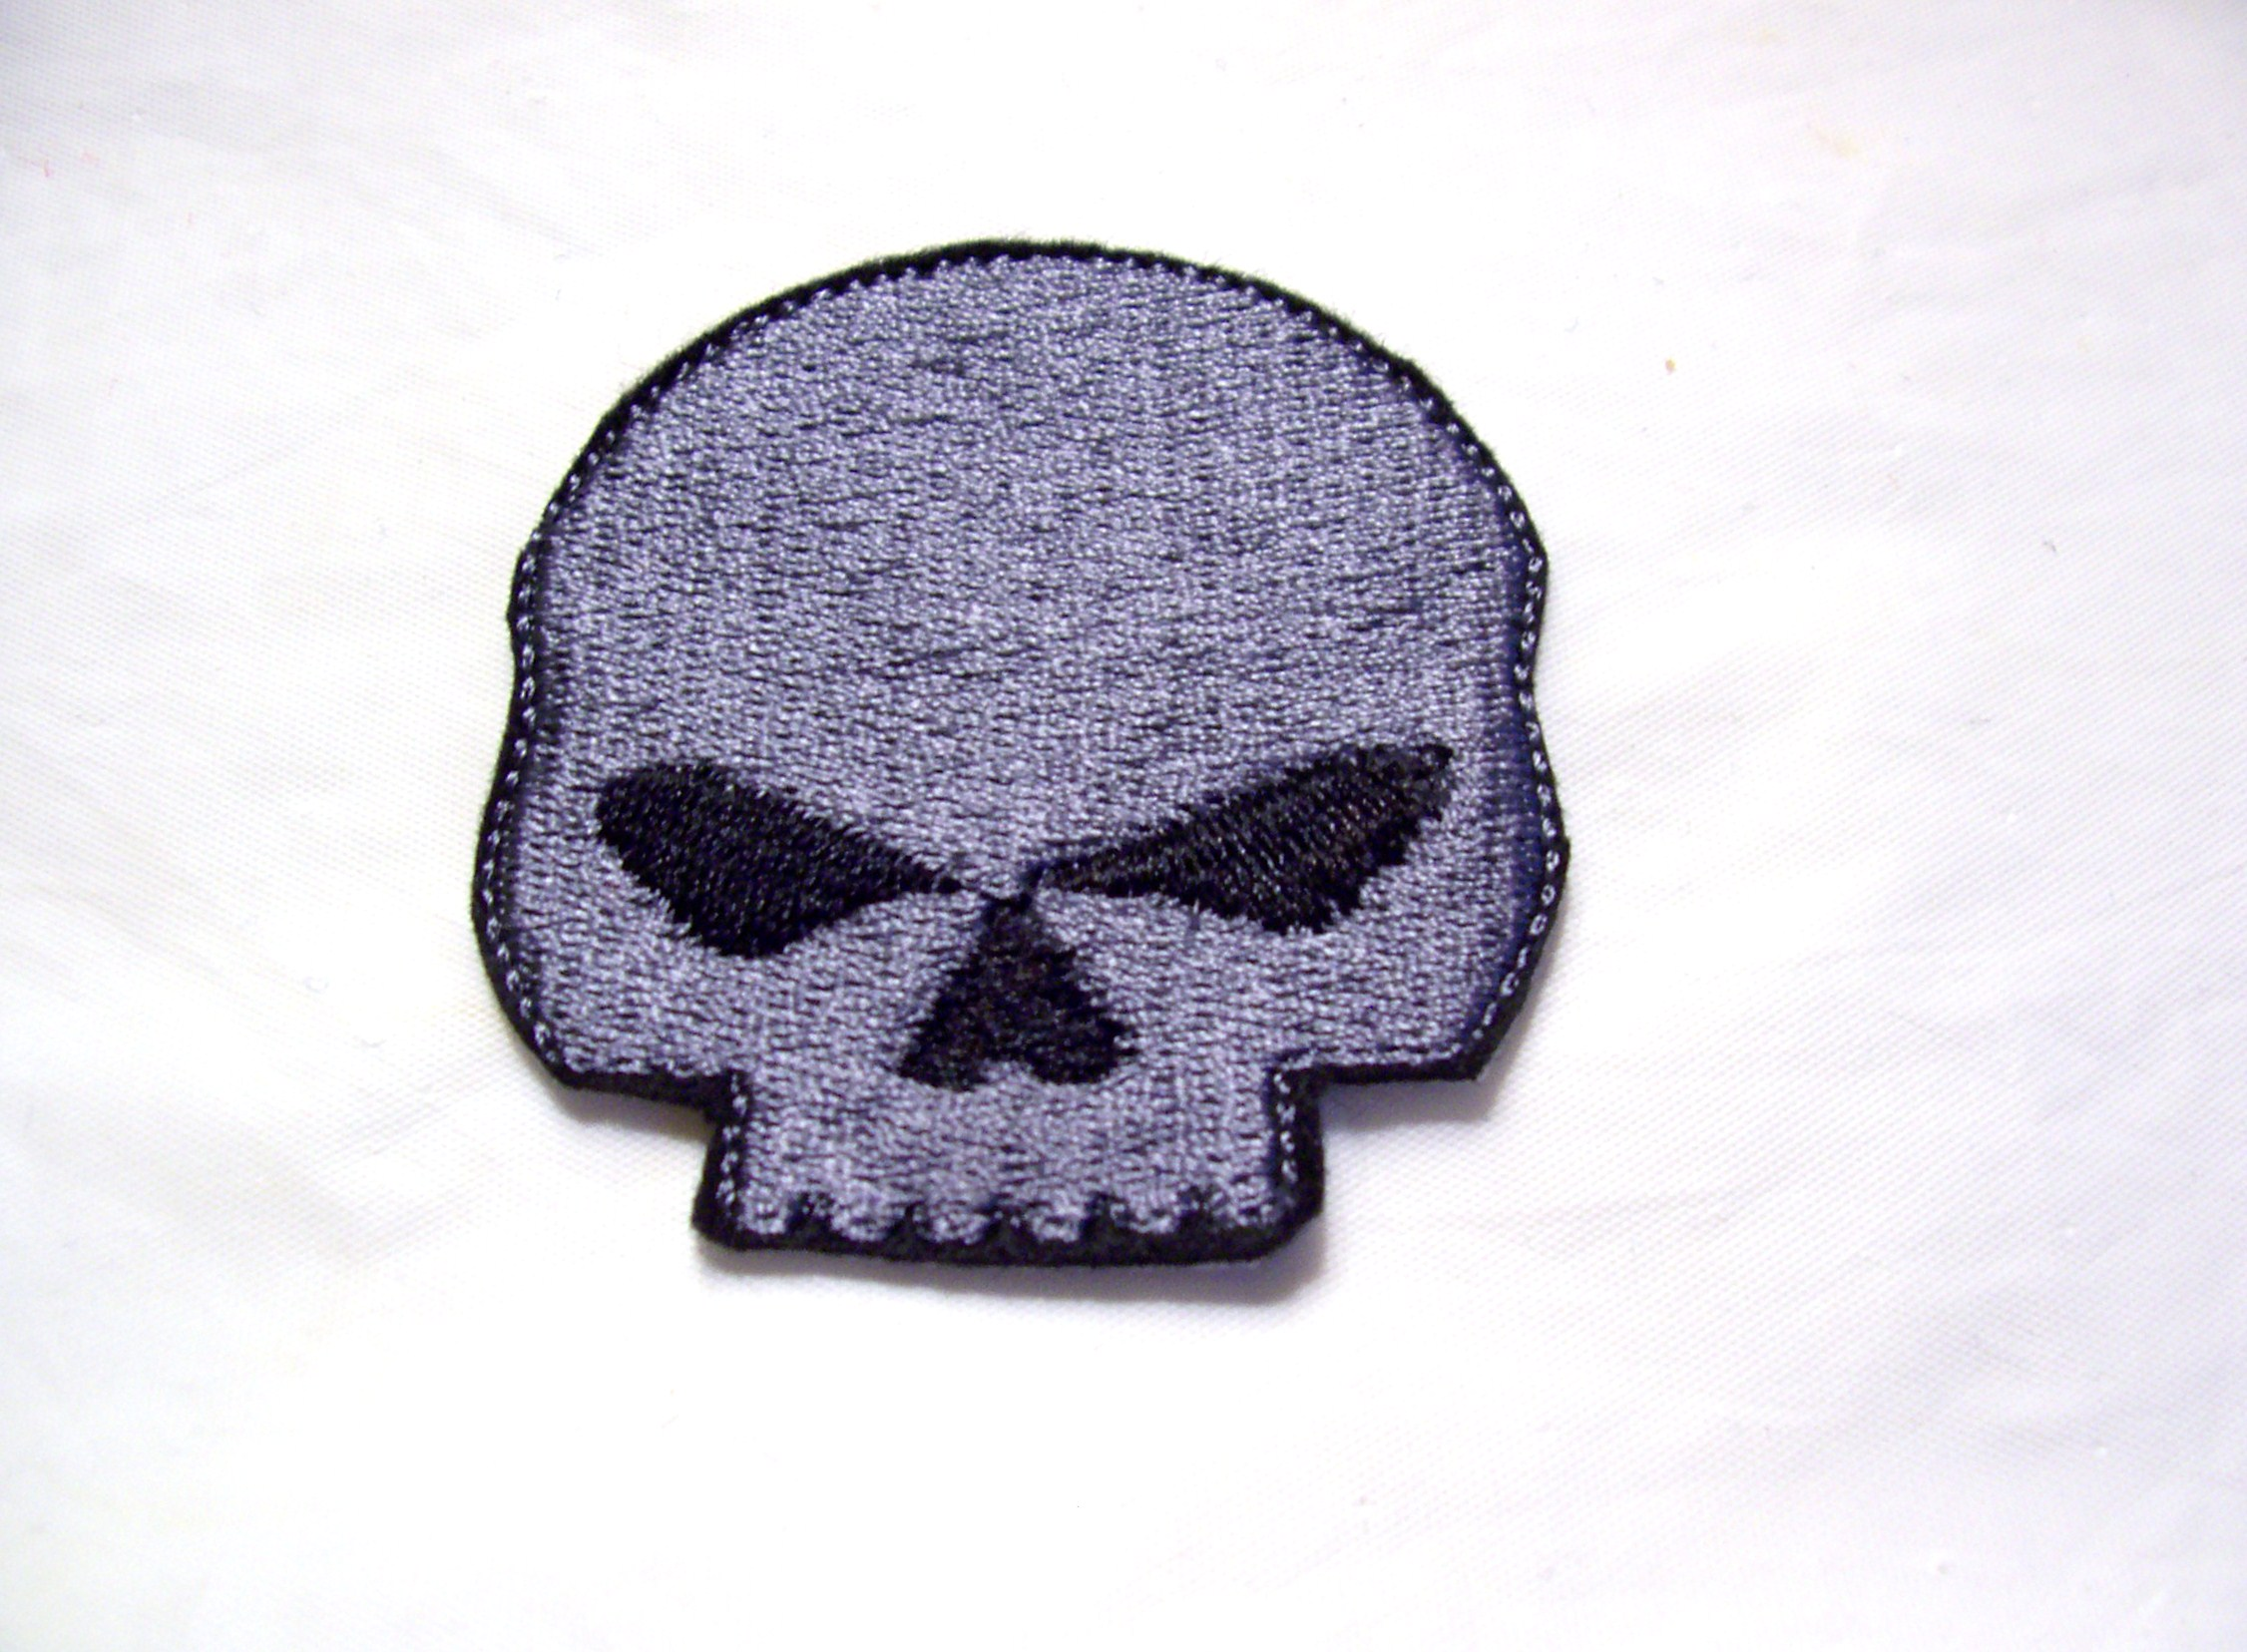 embroidered_pewter_grey_skull_patch_badge_sew_iron_on__patches_3.jpg